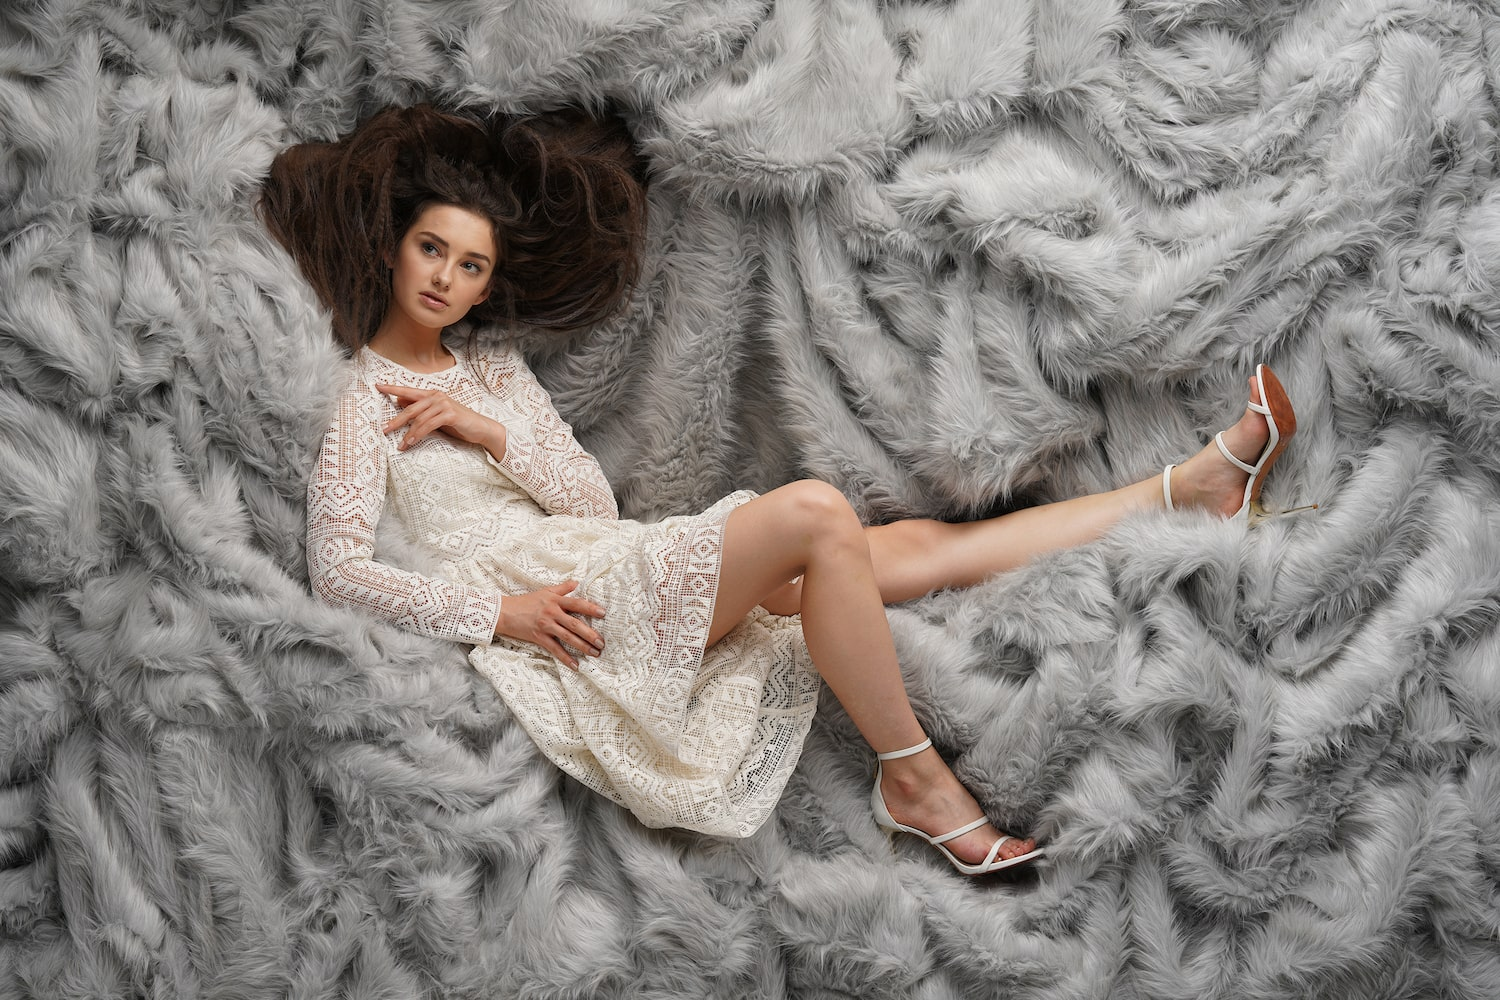 model-in-white-dress-against-fur-background-alpha-7RIV